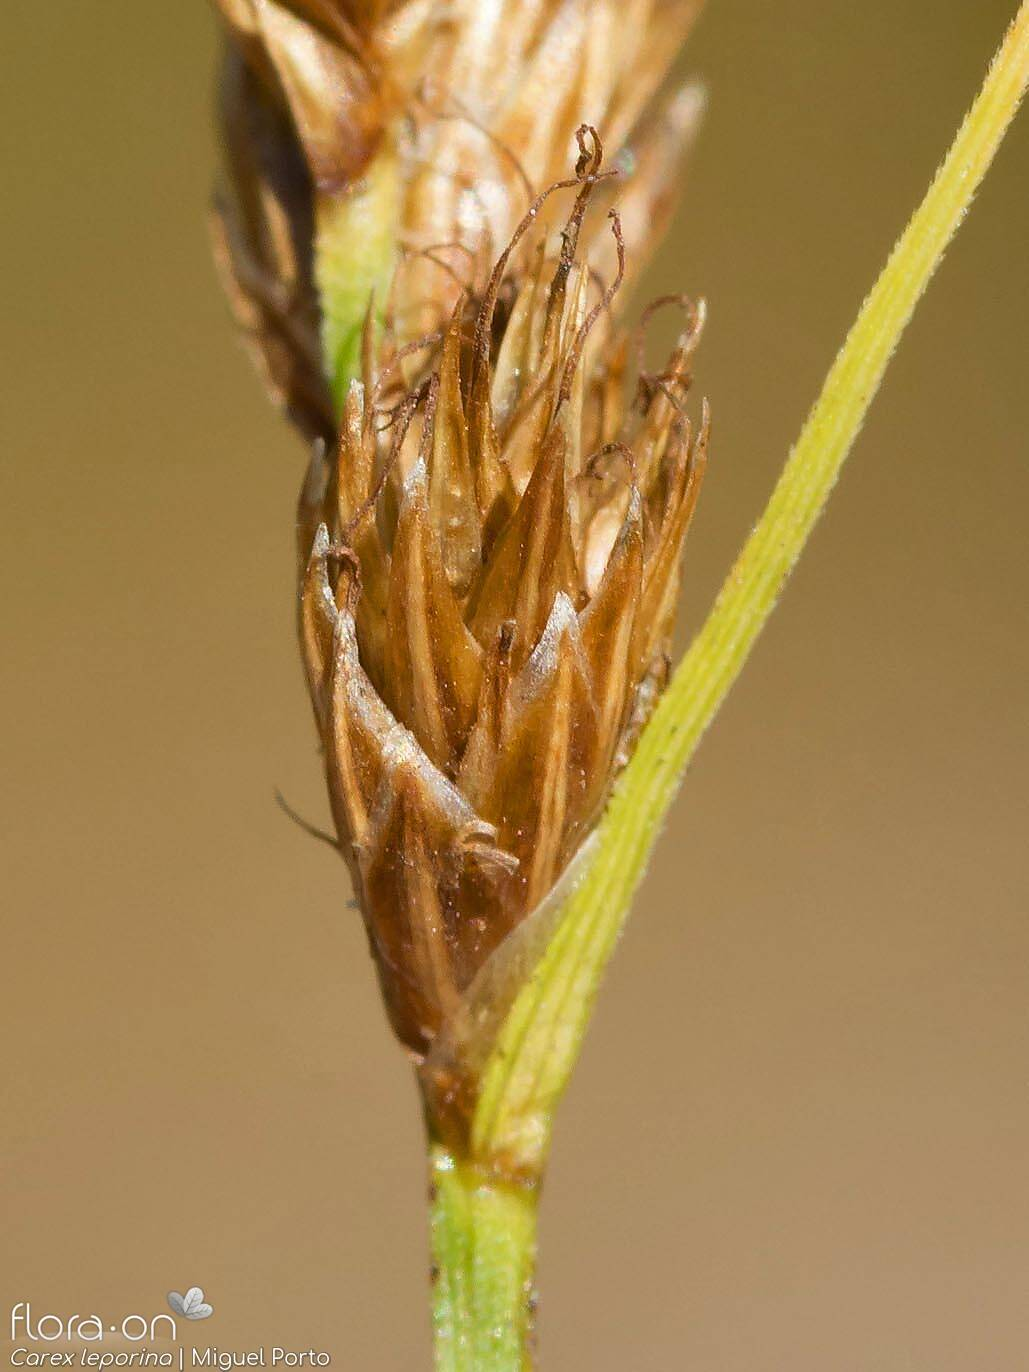 Carex leporina - Flor (close-up) | Miguel Porto; CC BY-NC 4.0